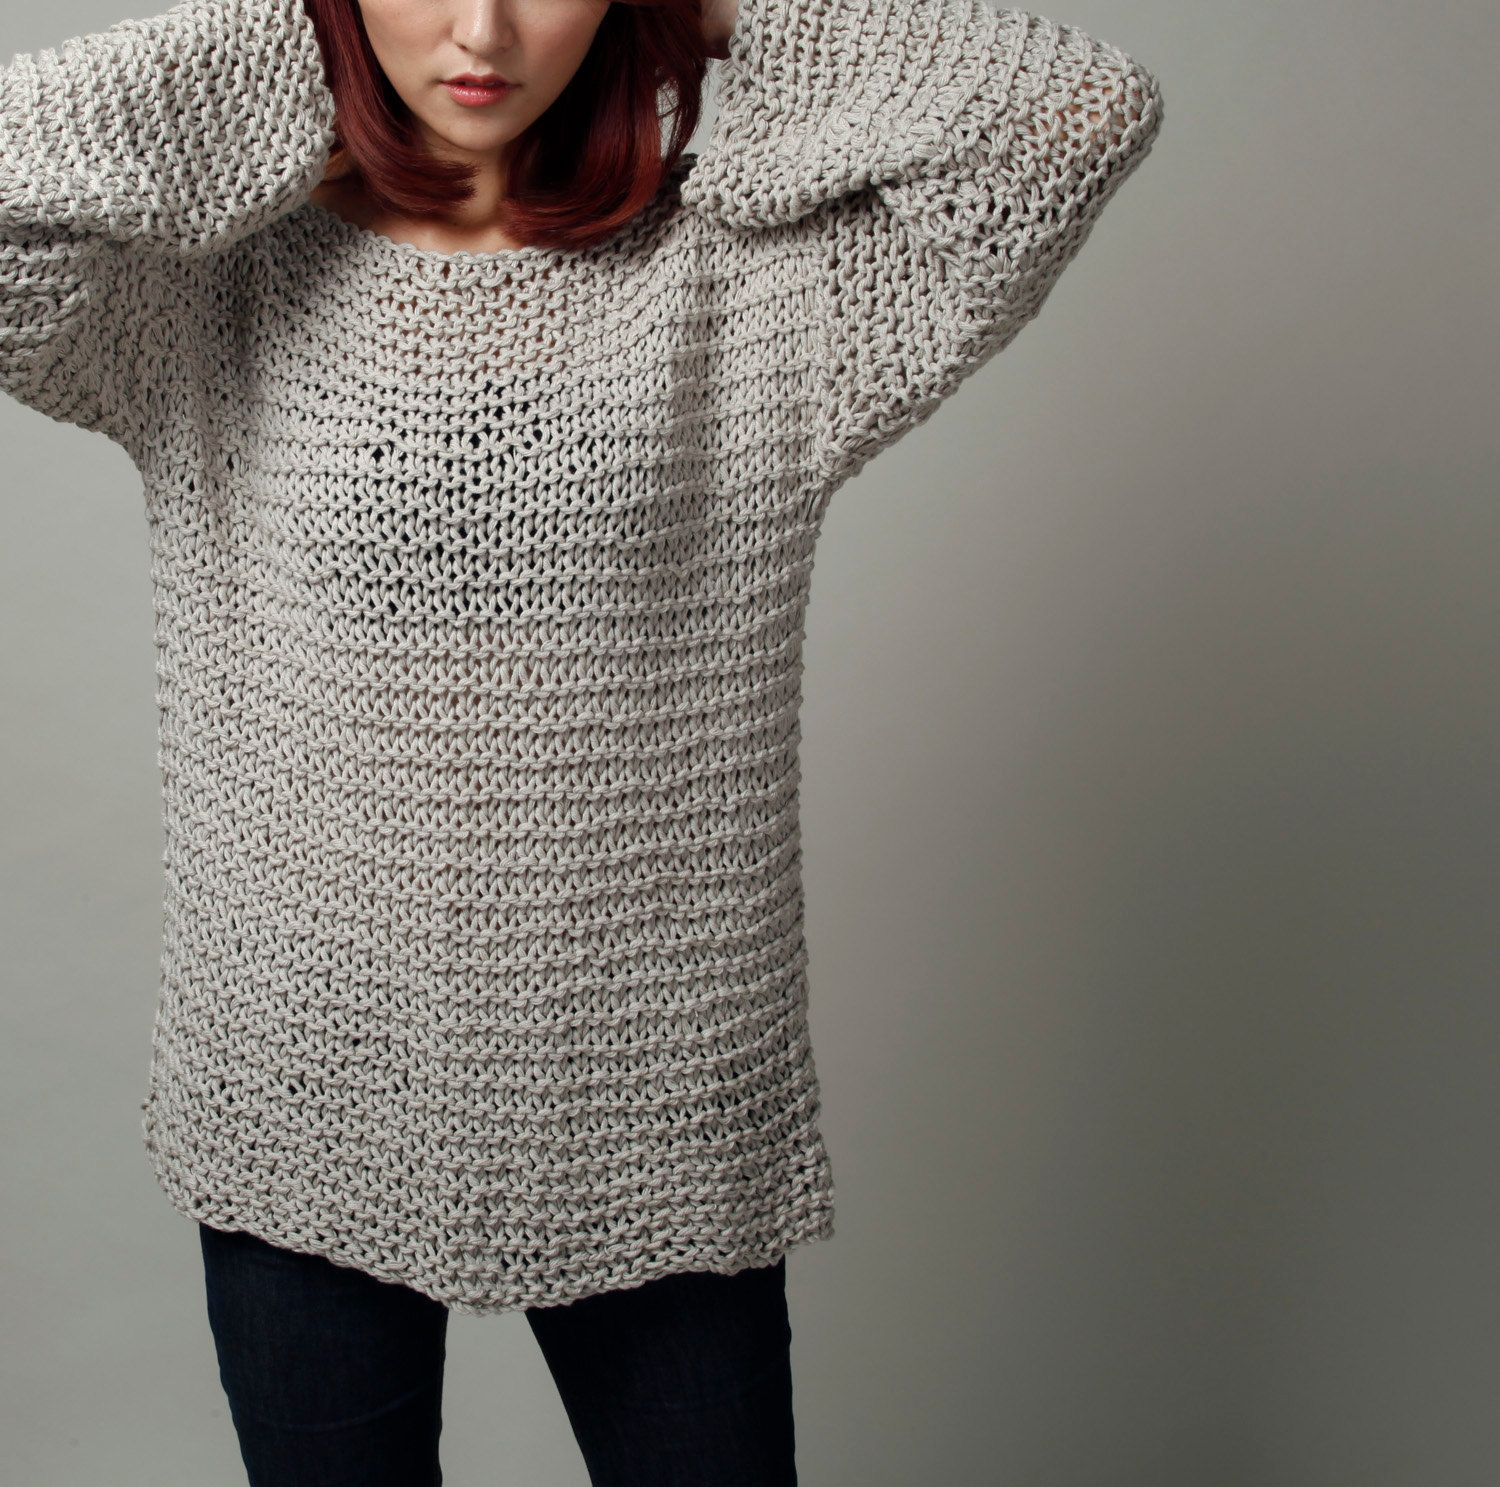 Simple is the best - Hand knit sweater Eco cotton oversized light ...